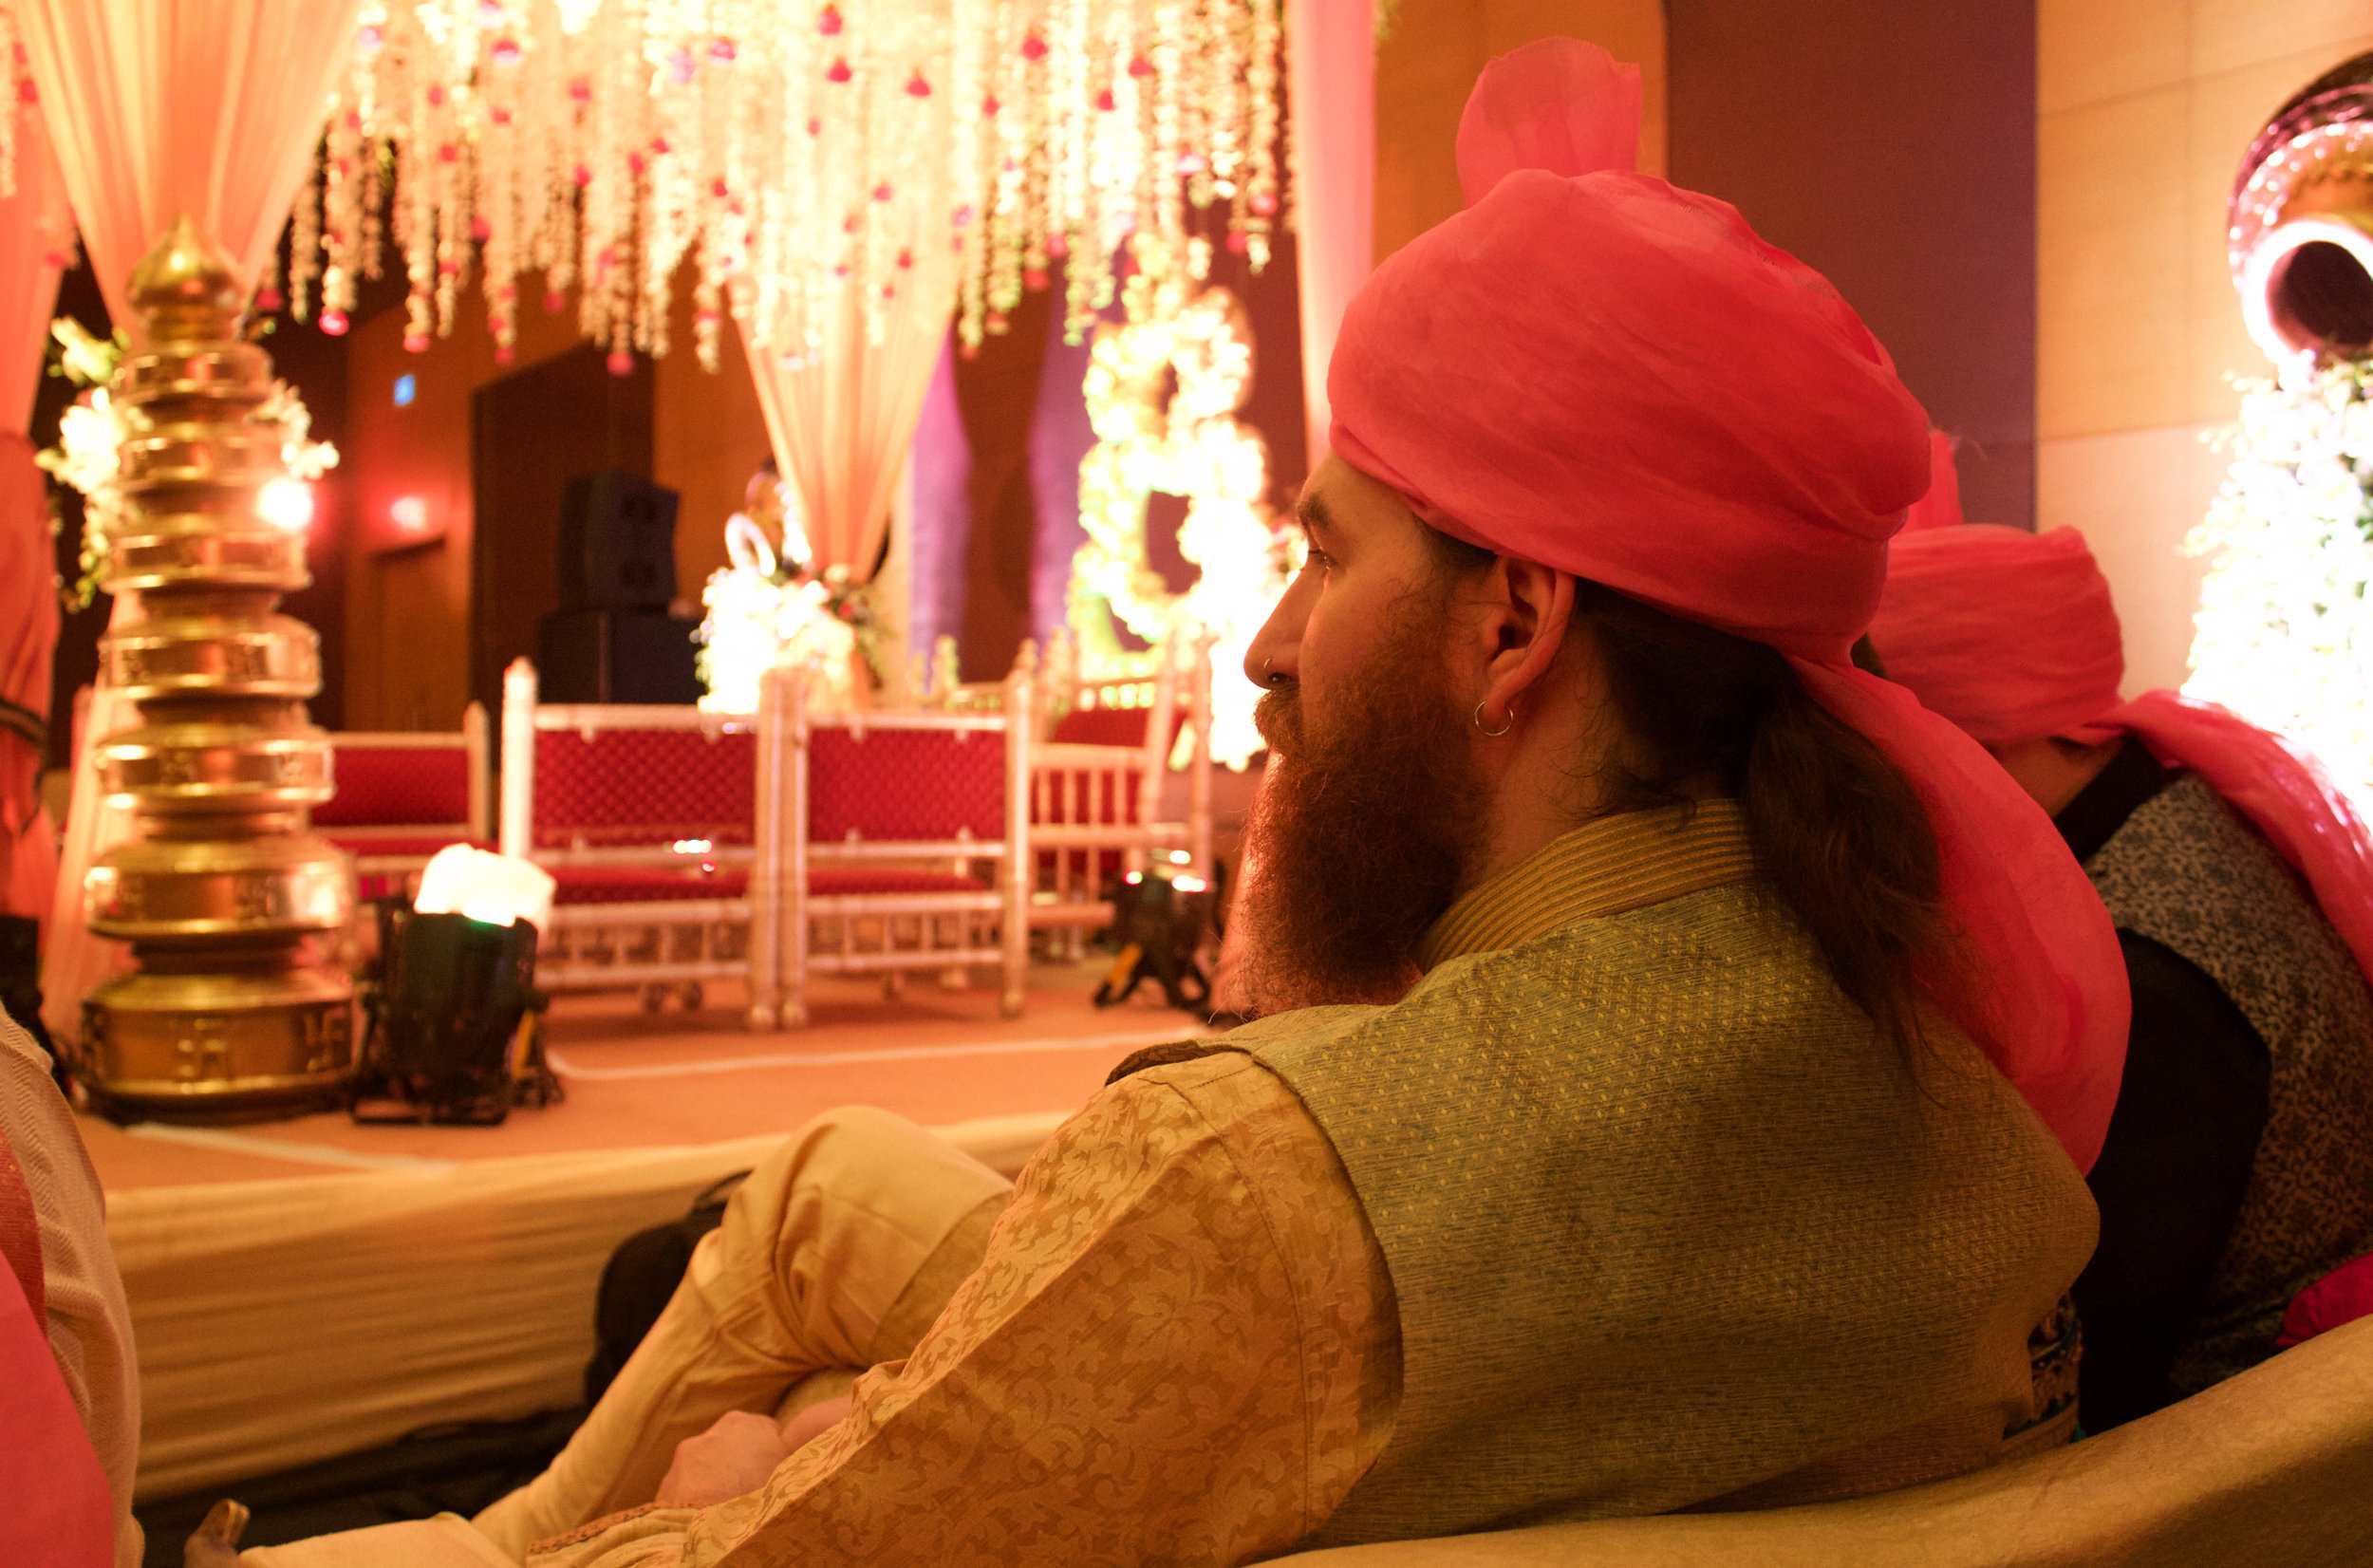 indian-wedding.jpg